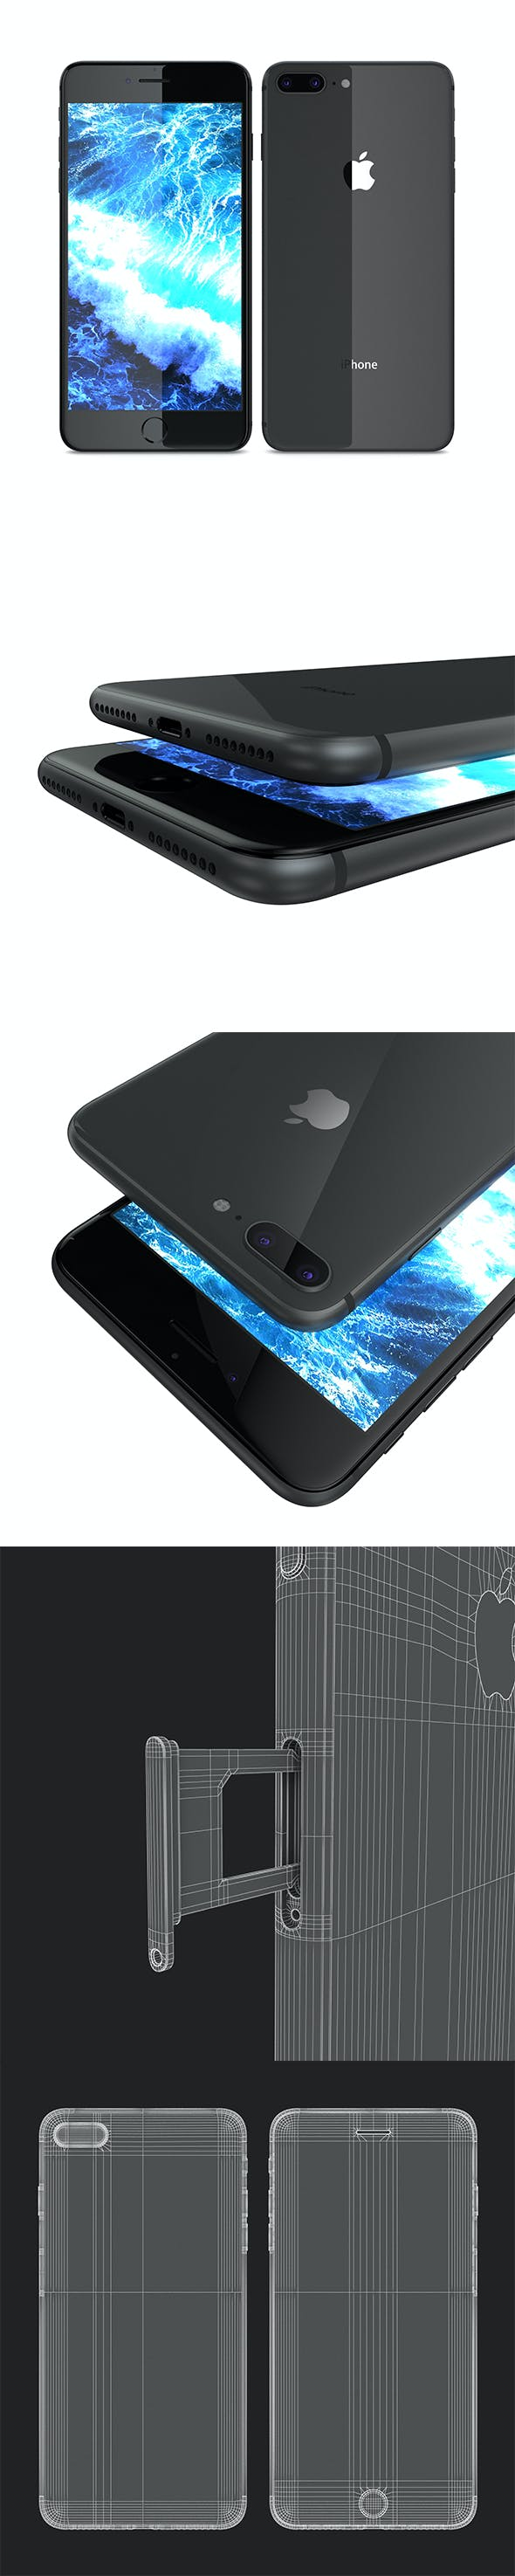 Apple iPhone 8 Plus Space Gray - 3DOcean Item for Sale